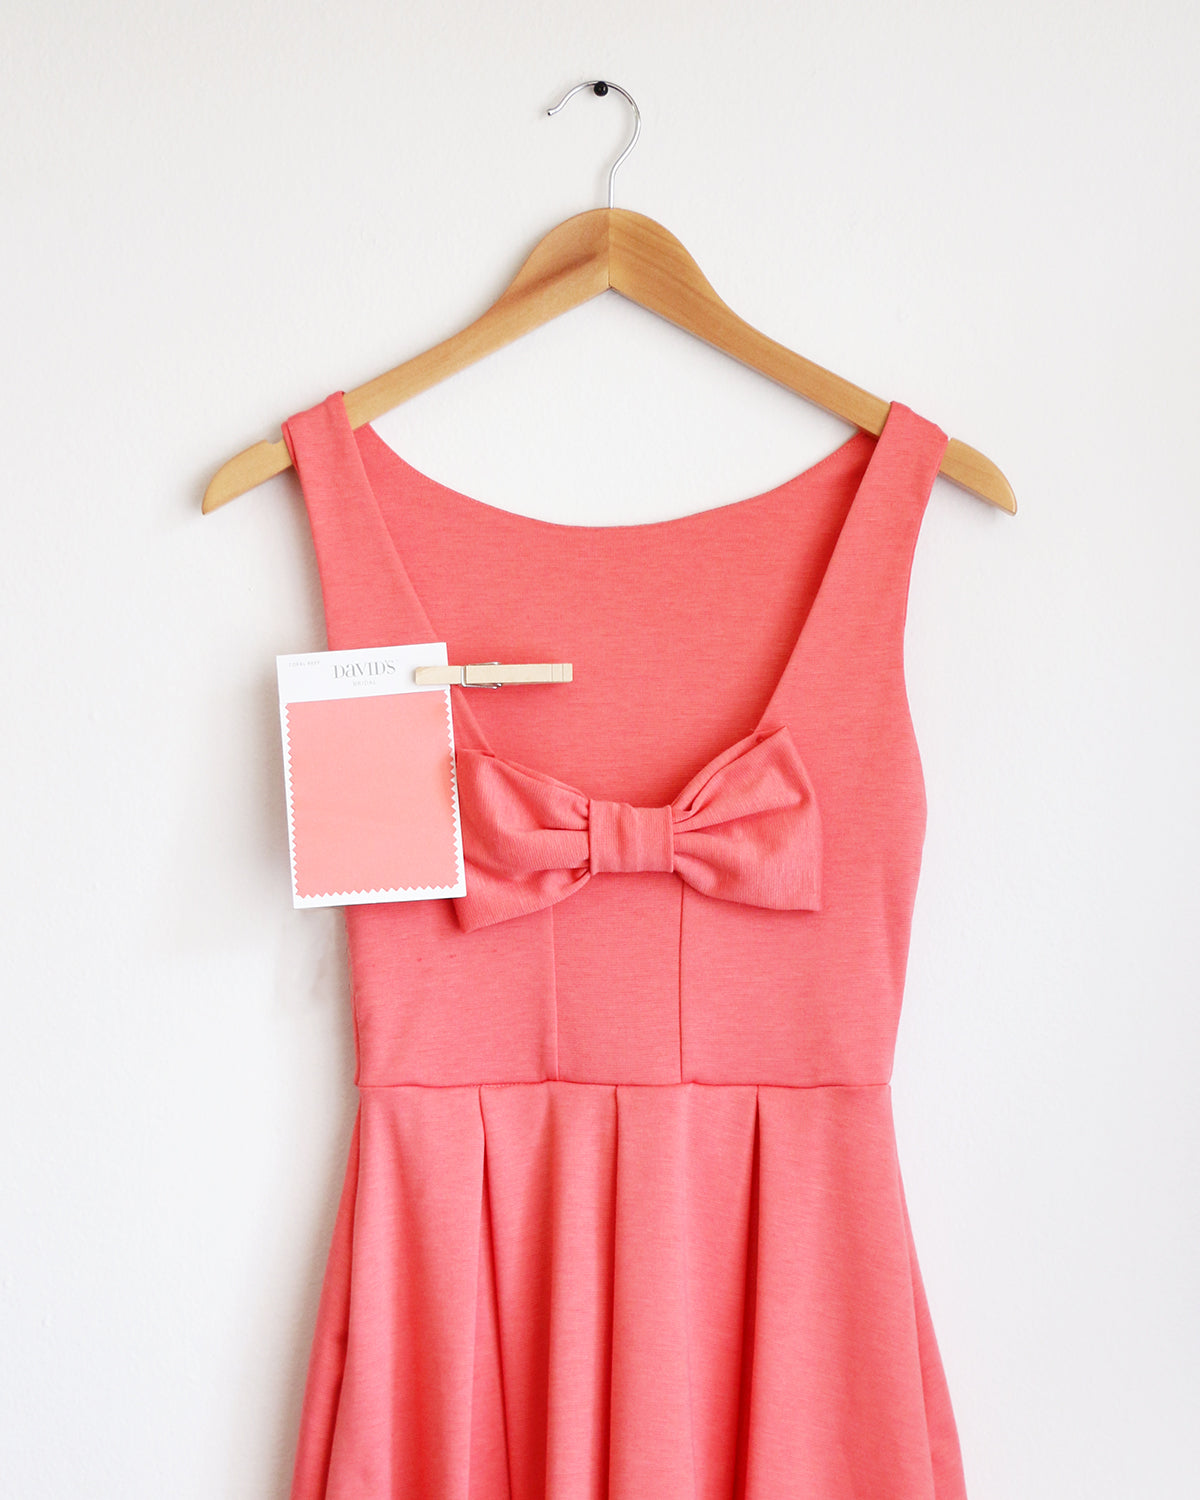 Apricity - JANUARY Dress in Watermelon - David's Bridal Coral Reef bridesmaid dress swatch